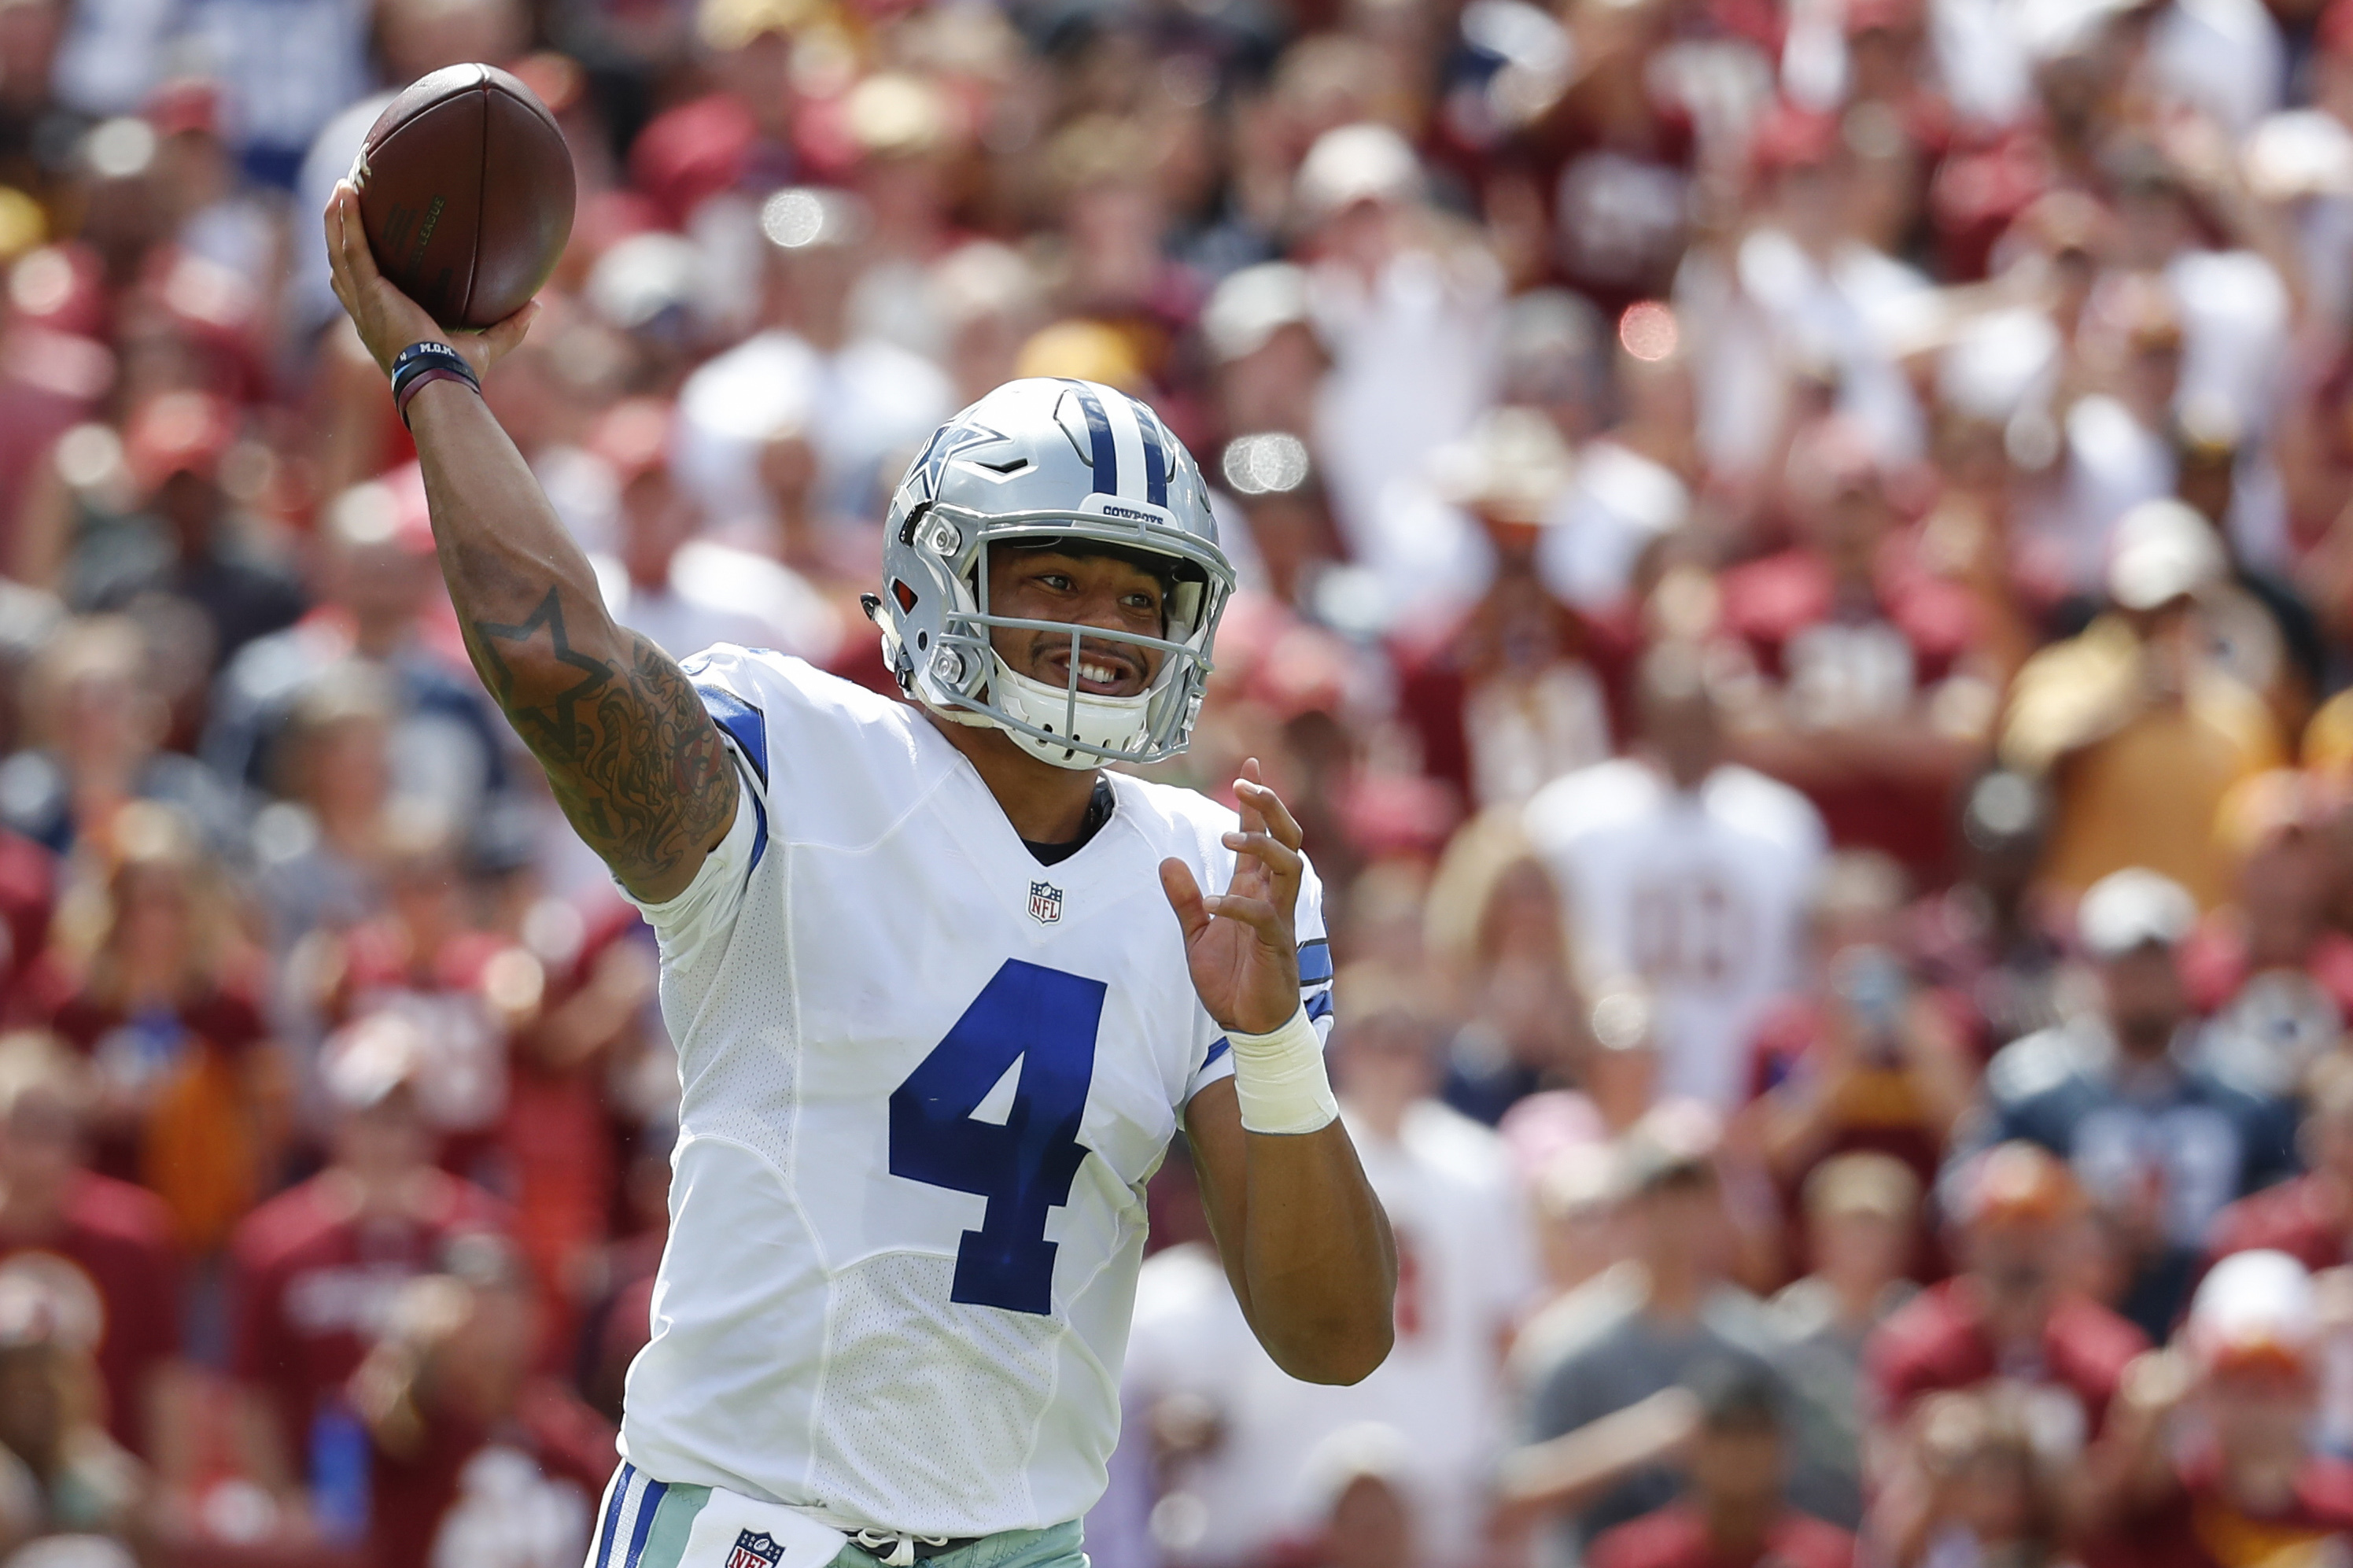 FILE - In this Sunday, Sept. 18, 2016 file photo, Dallas Cowboys quarterback Dak Prescott (4) passes the ball during the first half of an NFL football game against the Washington Redskins in Landover, Md. Prescott has said all along he felt ready for the